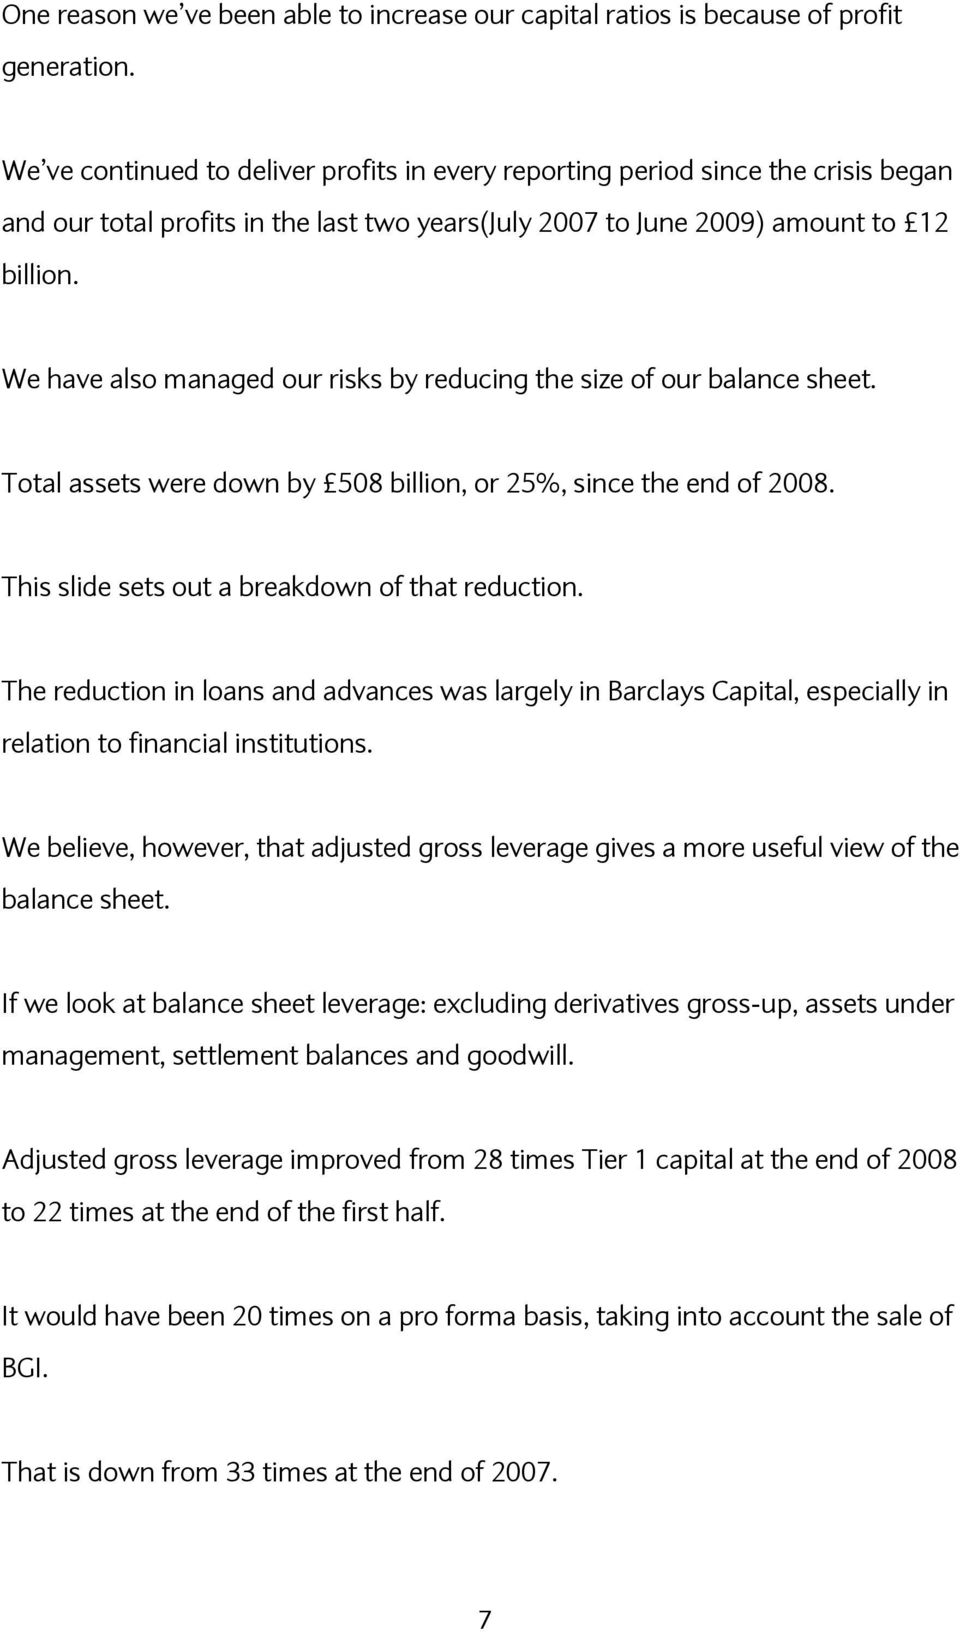 We have also managed our risks by reducing the size of our balance sheet. Total assets were down by 508 billion, or 25%, since the end of 2008. This slide sets out a breakdown of that reduction.